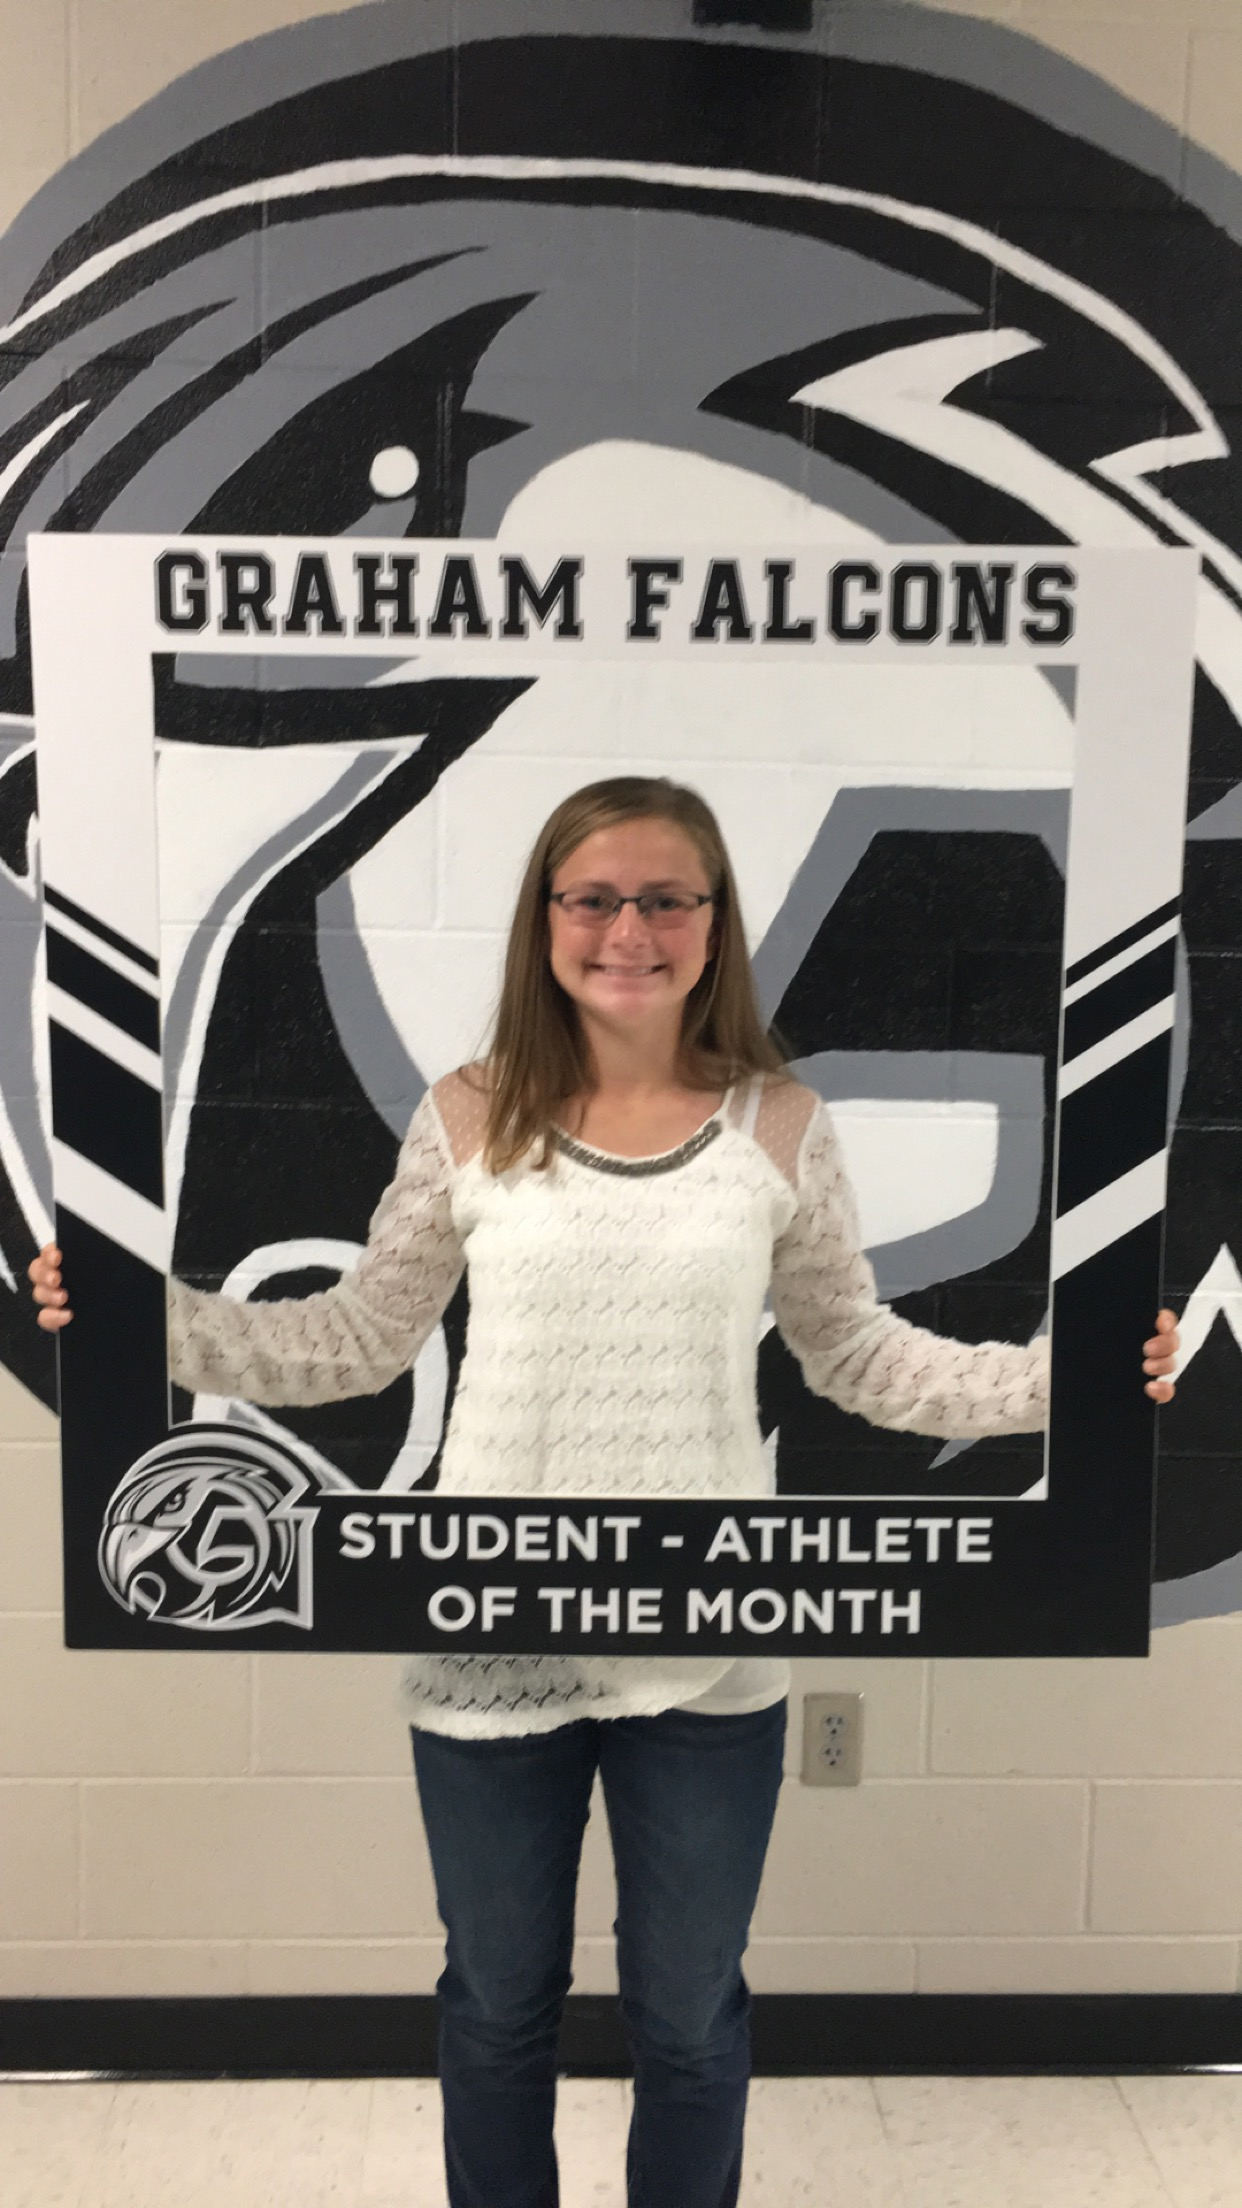 Congratulations to the October student-athlete of the month.. Lauran Bailey!